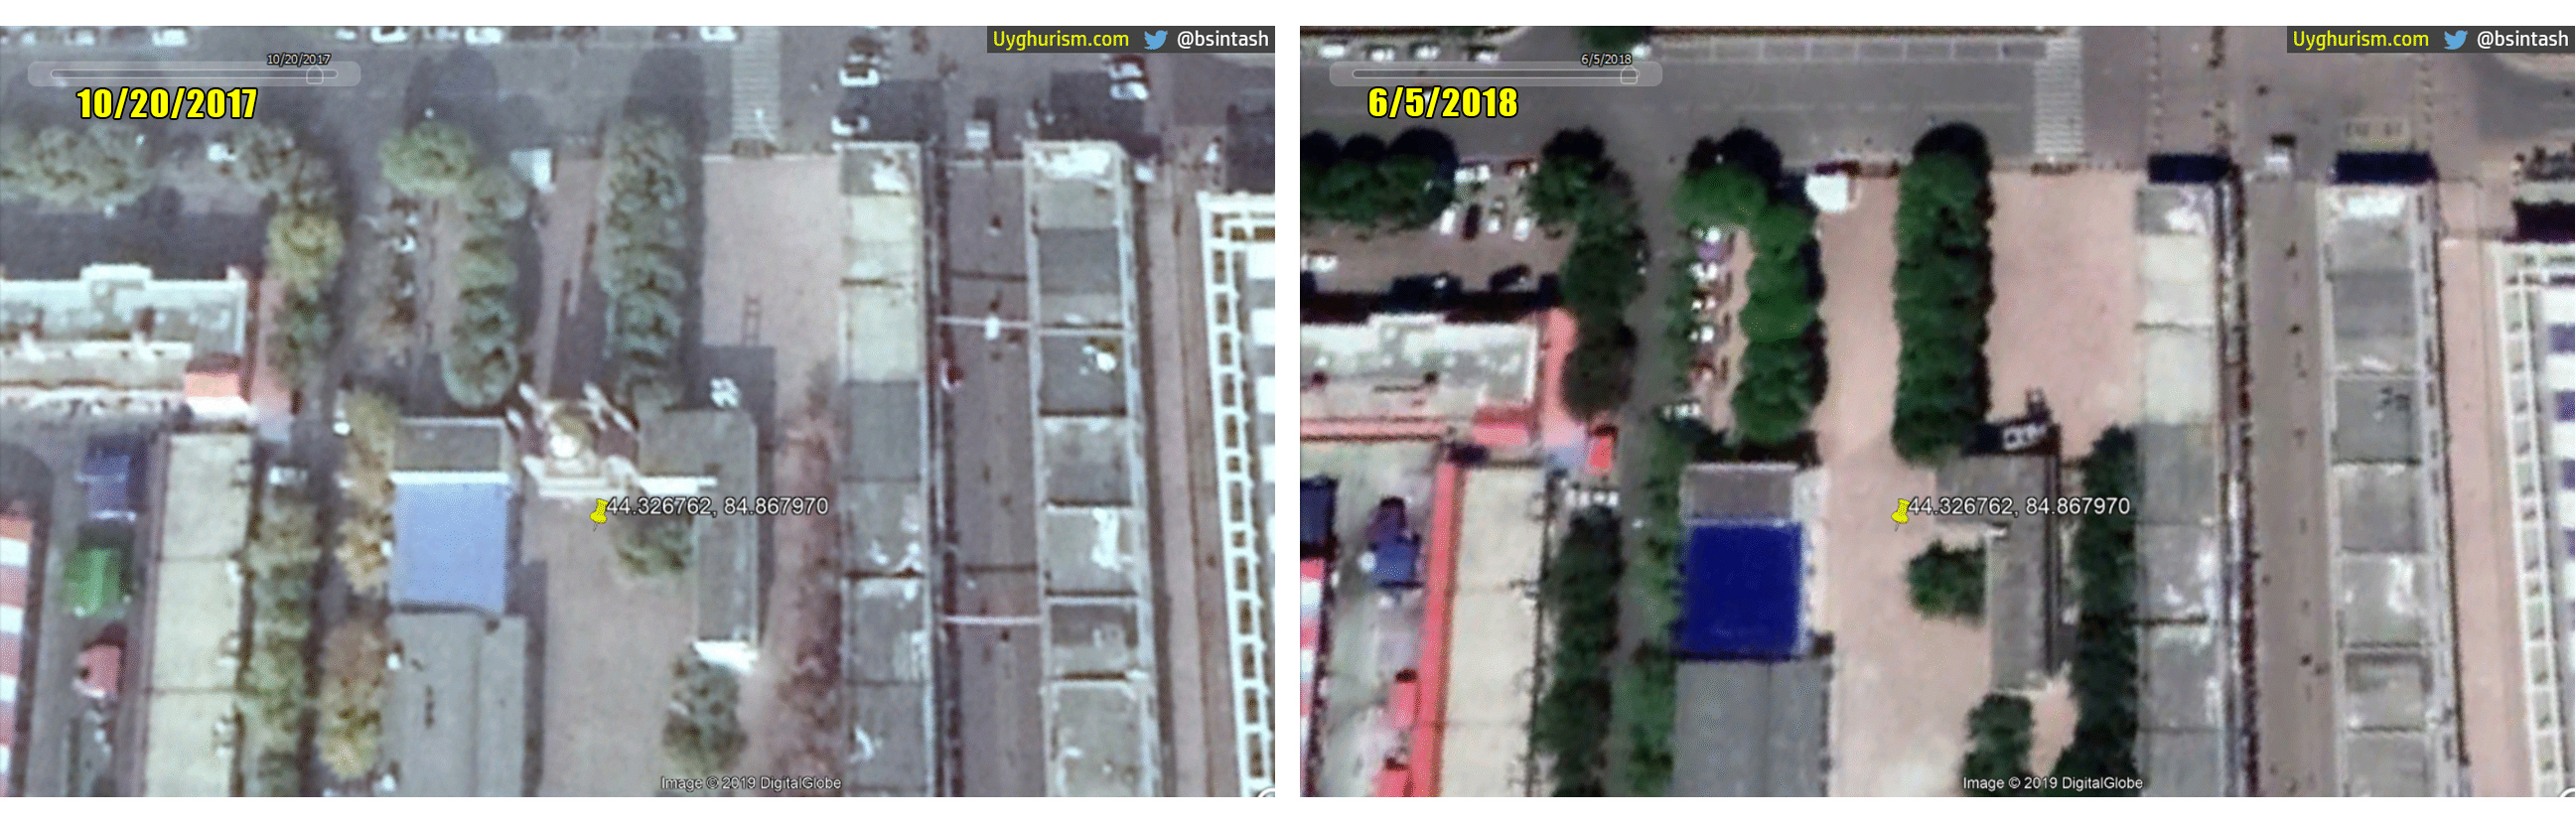 Satellite imagery comparison analysis of Maytag Grand Mosque. Left: October 20, 2017. Right: June, 5, 2018